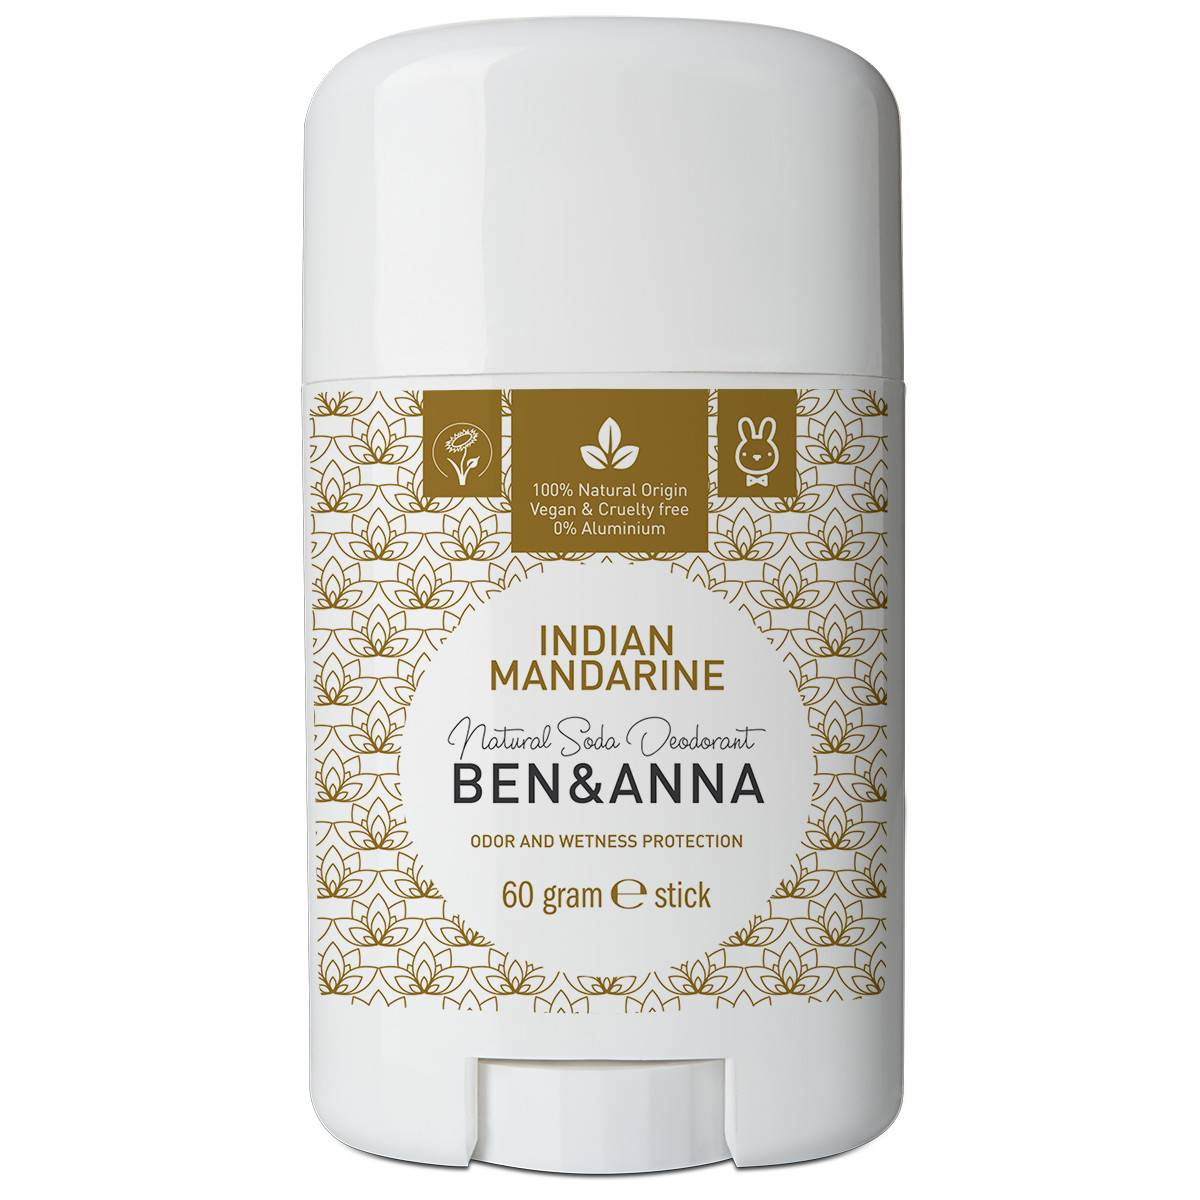 Ben&Anna Desodorante natural en stick Indian Mandarine